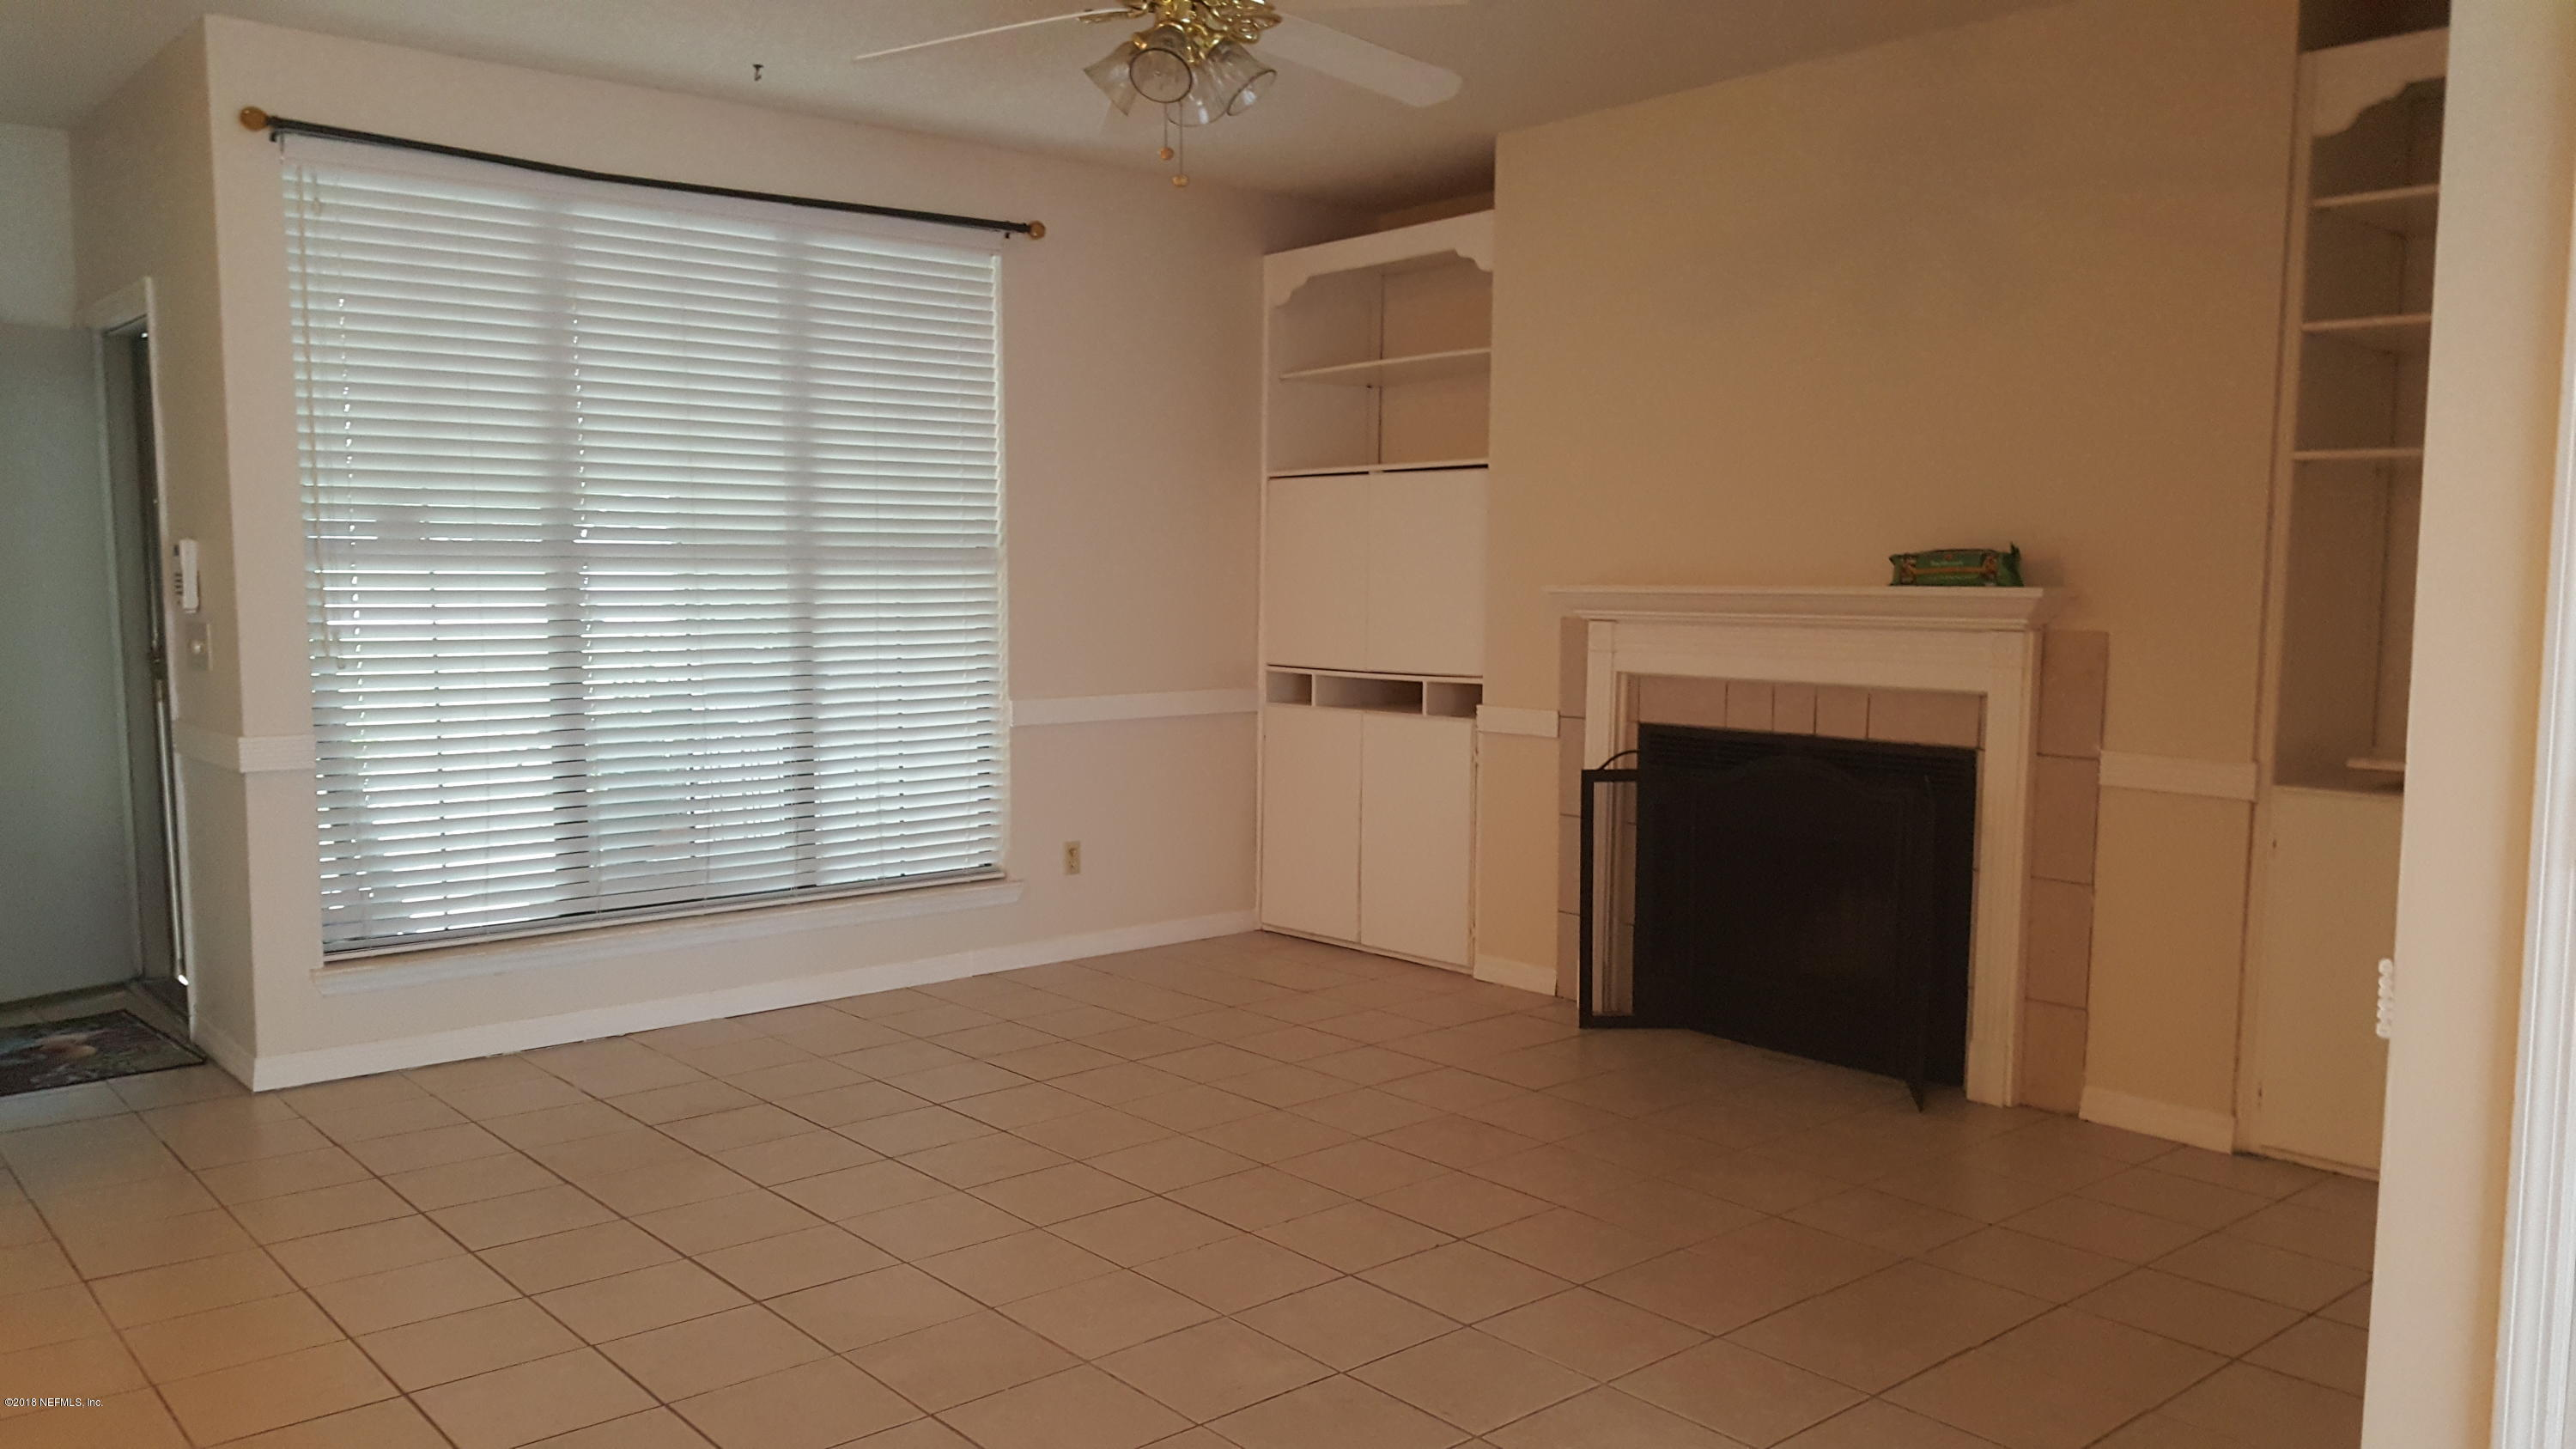 2203 WOOD HILL, JACKSONVILLE, FLORIDA 32256, 2 Bedrooms Bedrooms, ,1 BathroomBathrooms,Residential - condos/townhomes,For sale,WOOD HILL,959336